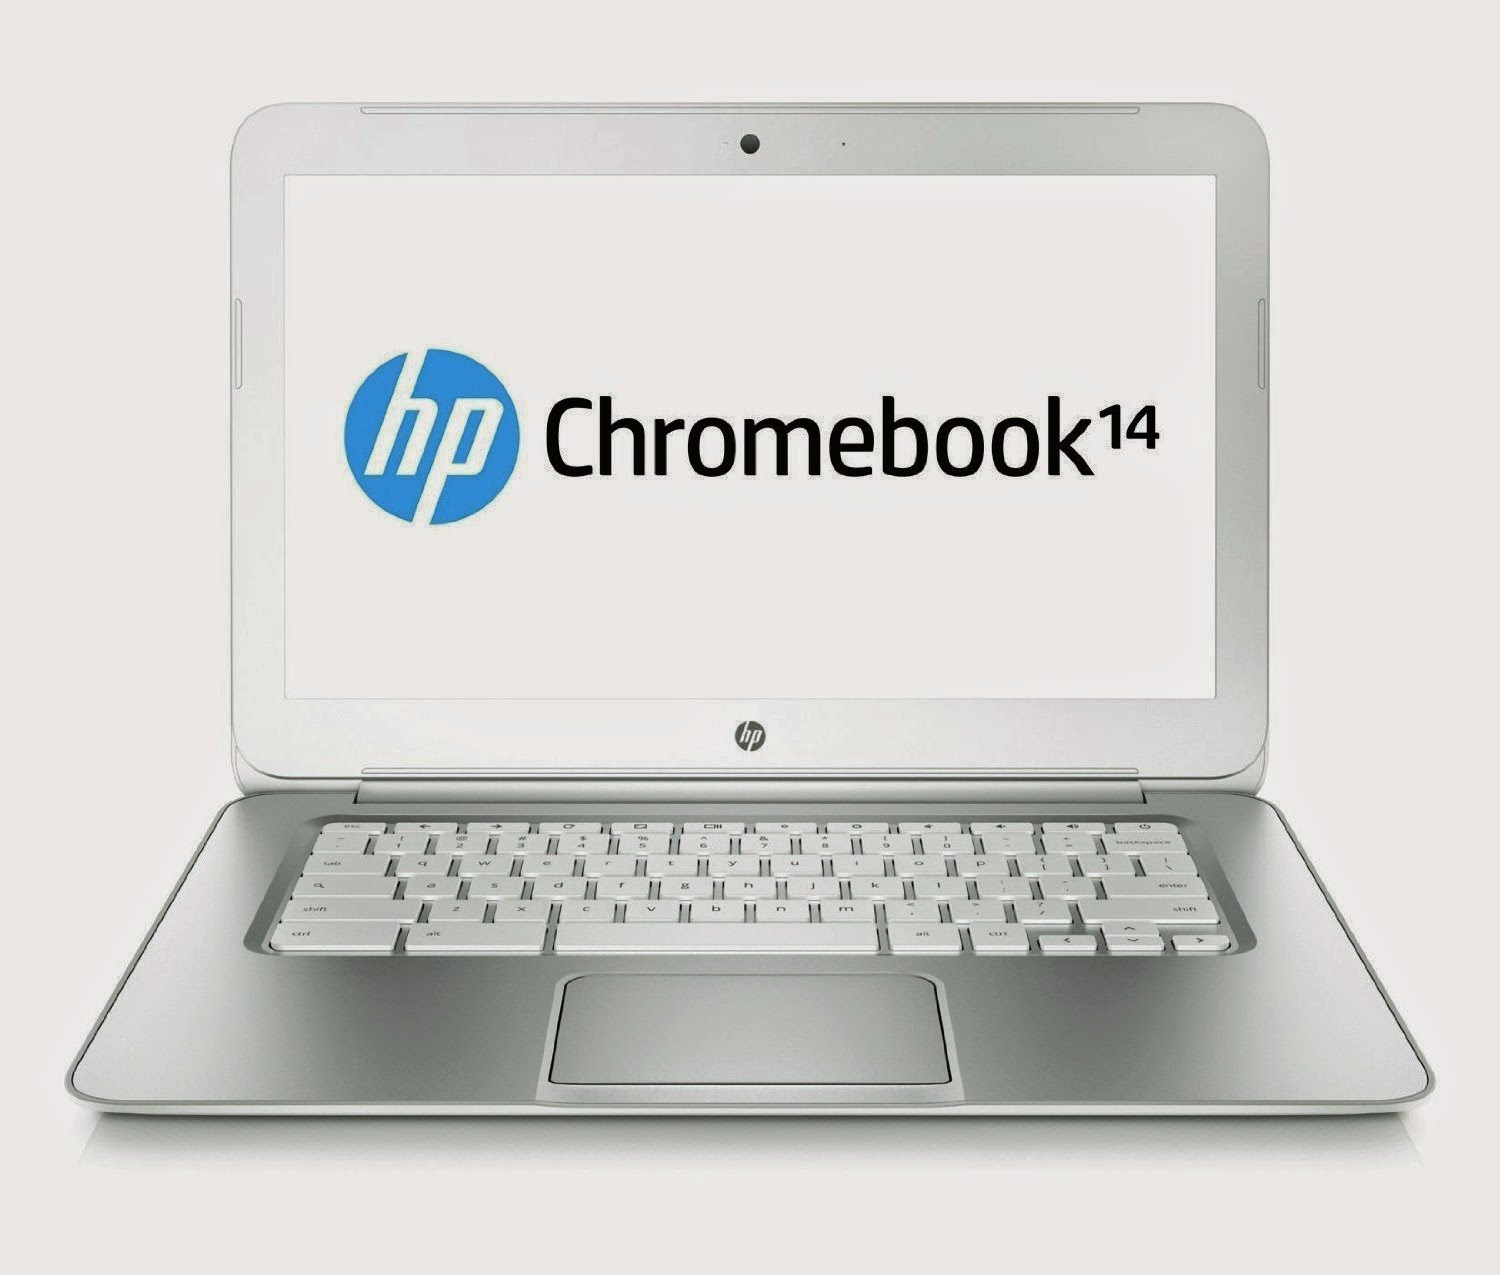 user guide for chromebook hp chromebook 14 manual download